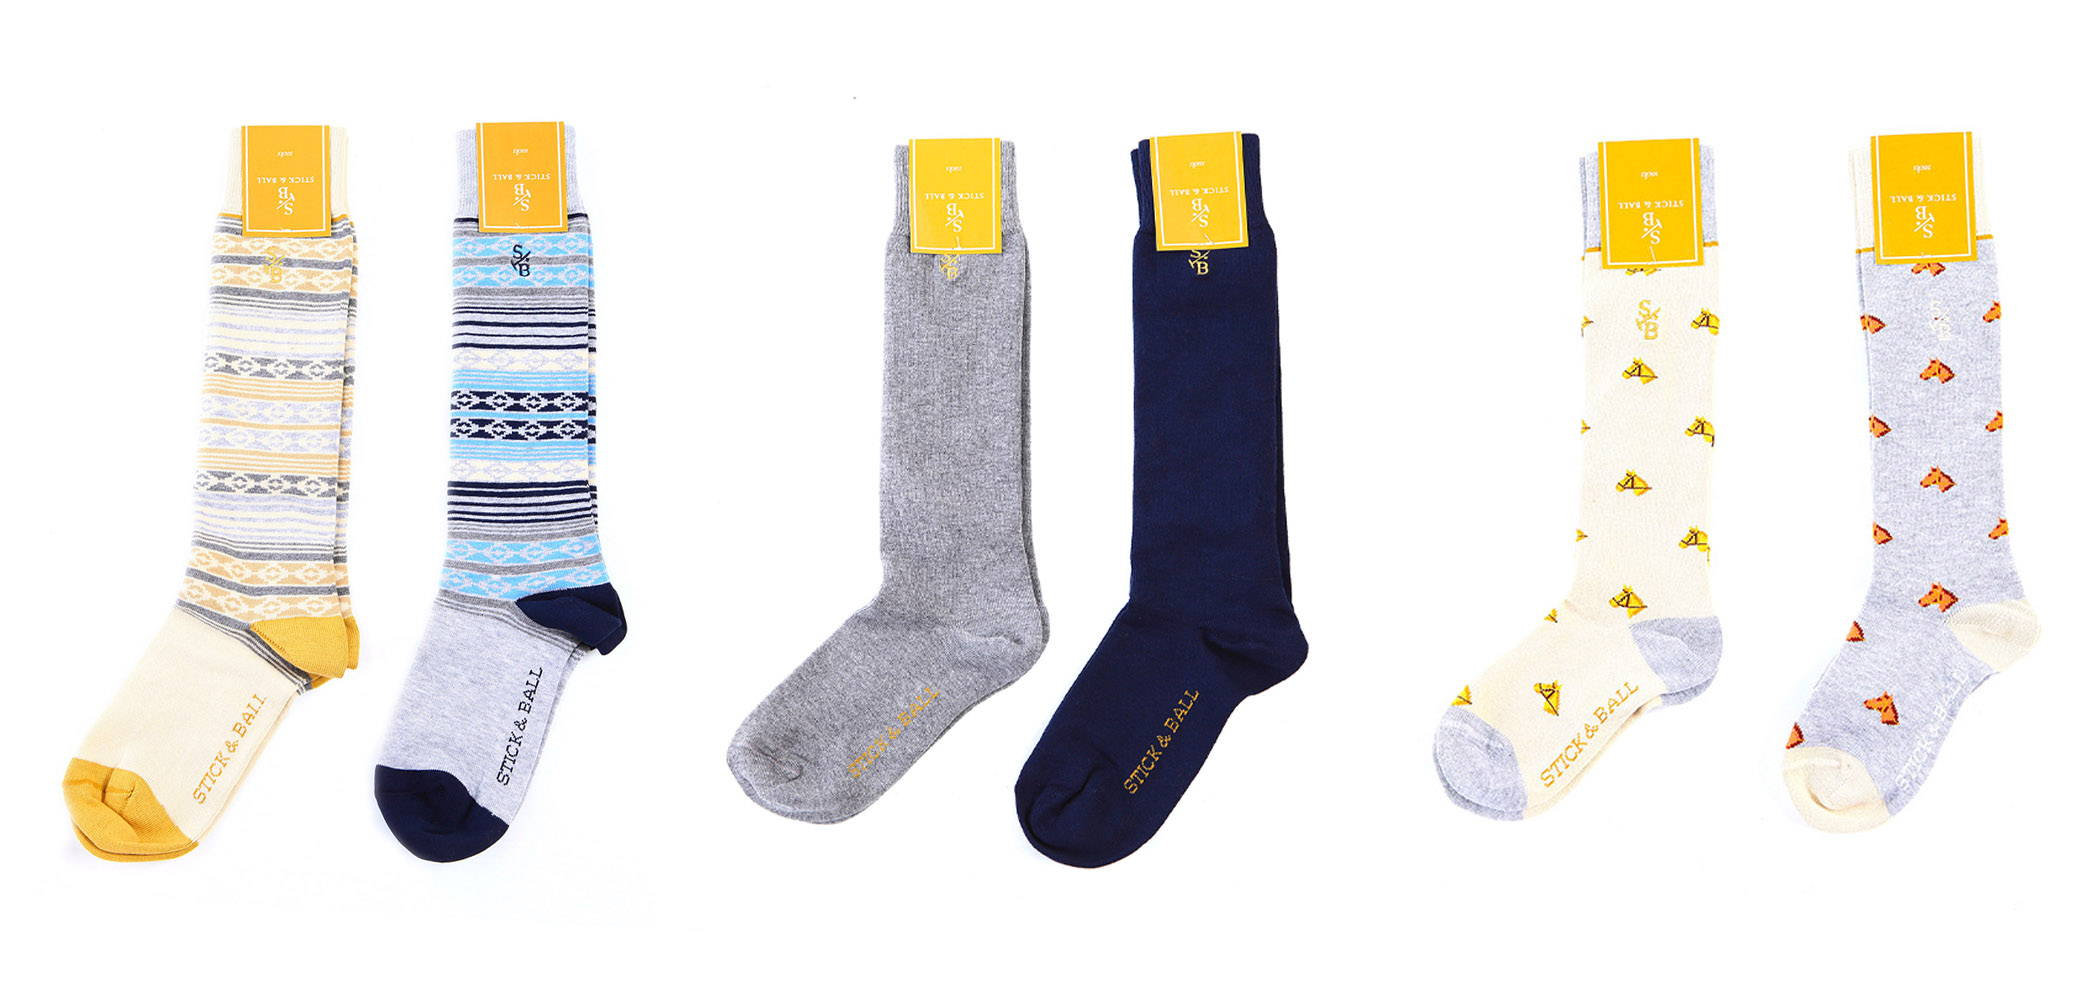 Collection of Stick & Ball Equestrian-inspired boot socks in solid colors, pampa & horse head designs